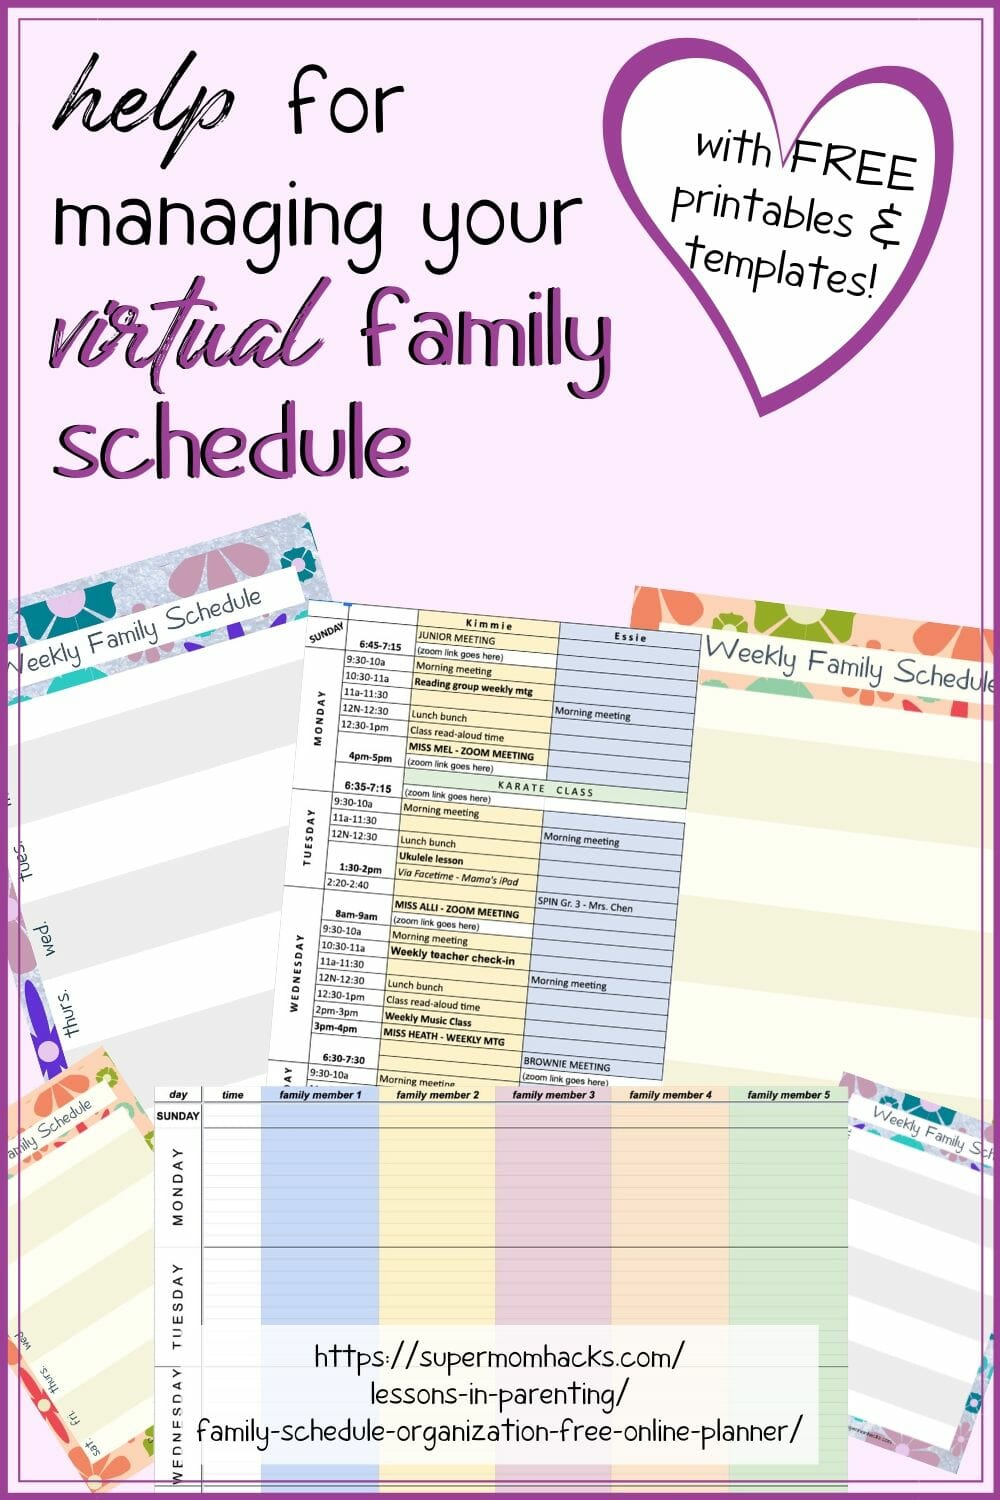 Having a hard time keeping track of everyone's virtual appointments and online meeting links? Download my virtual family schedule planner (FREE templates)!